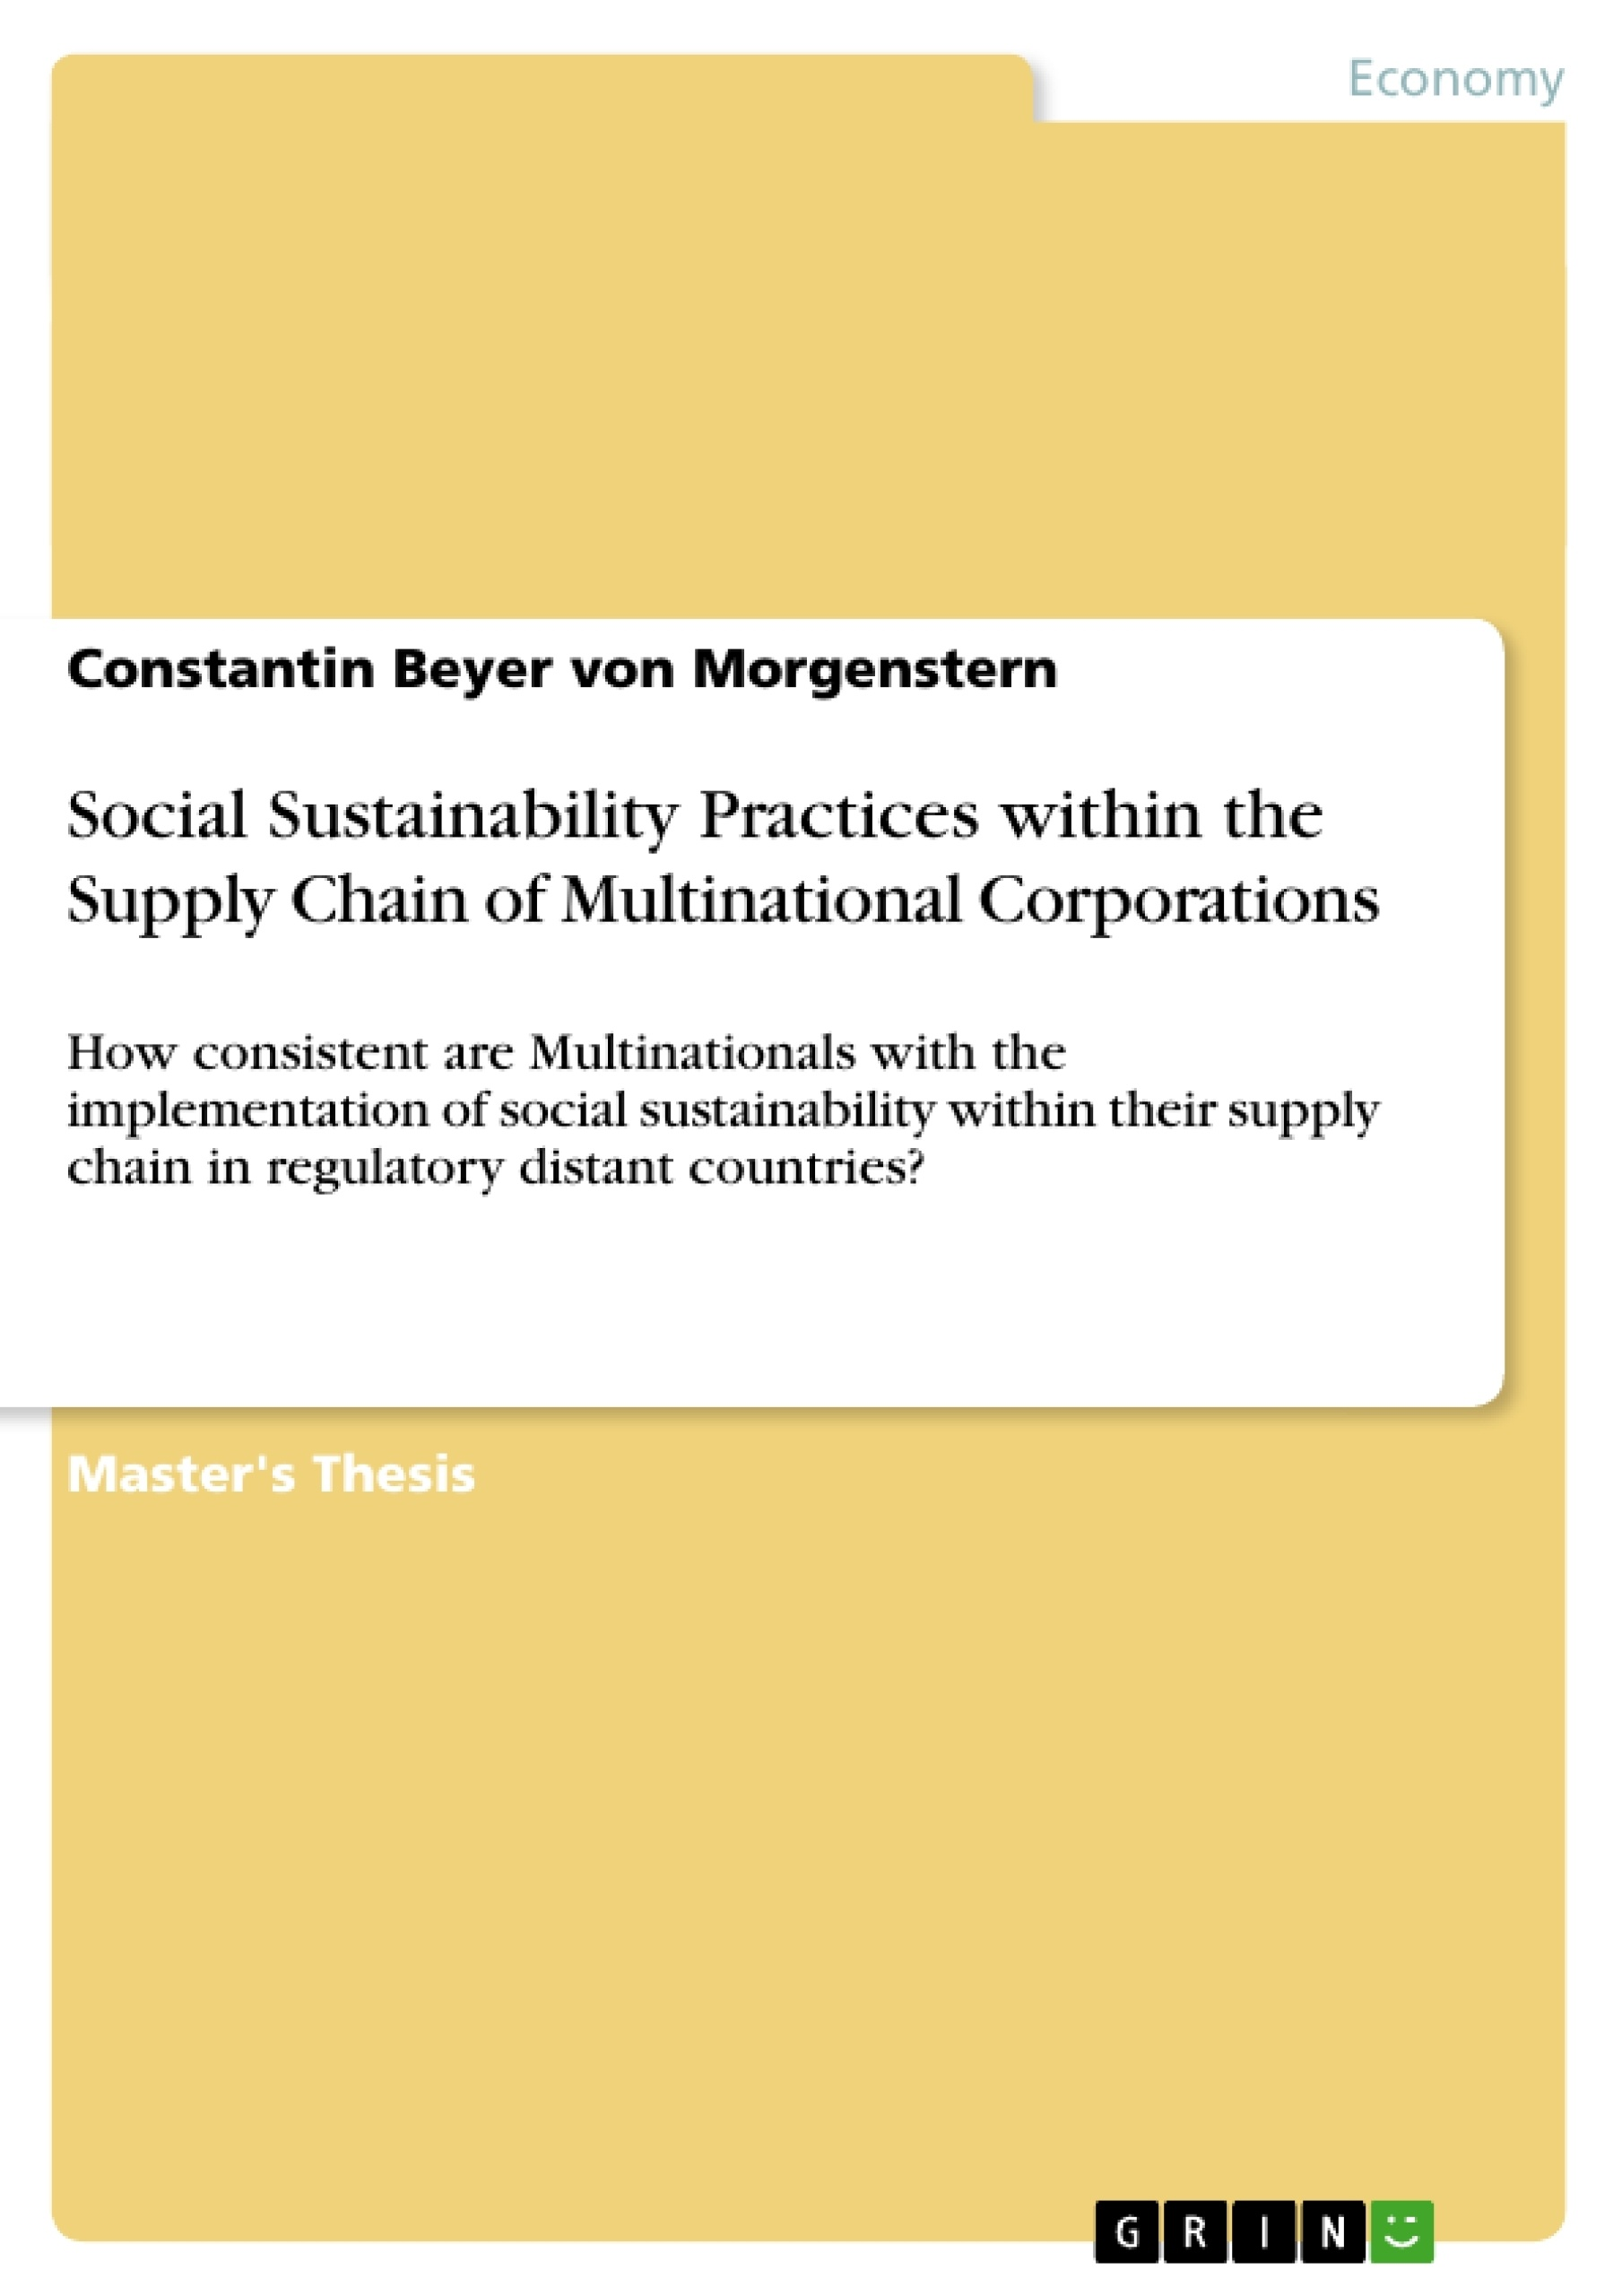 Education master thesis topics in supply chain